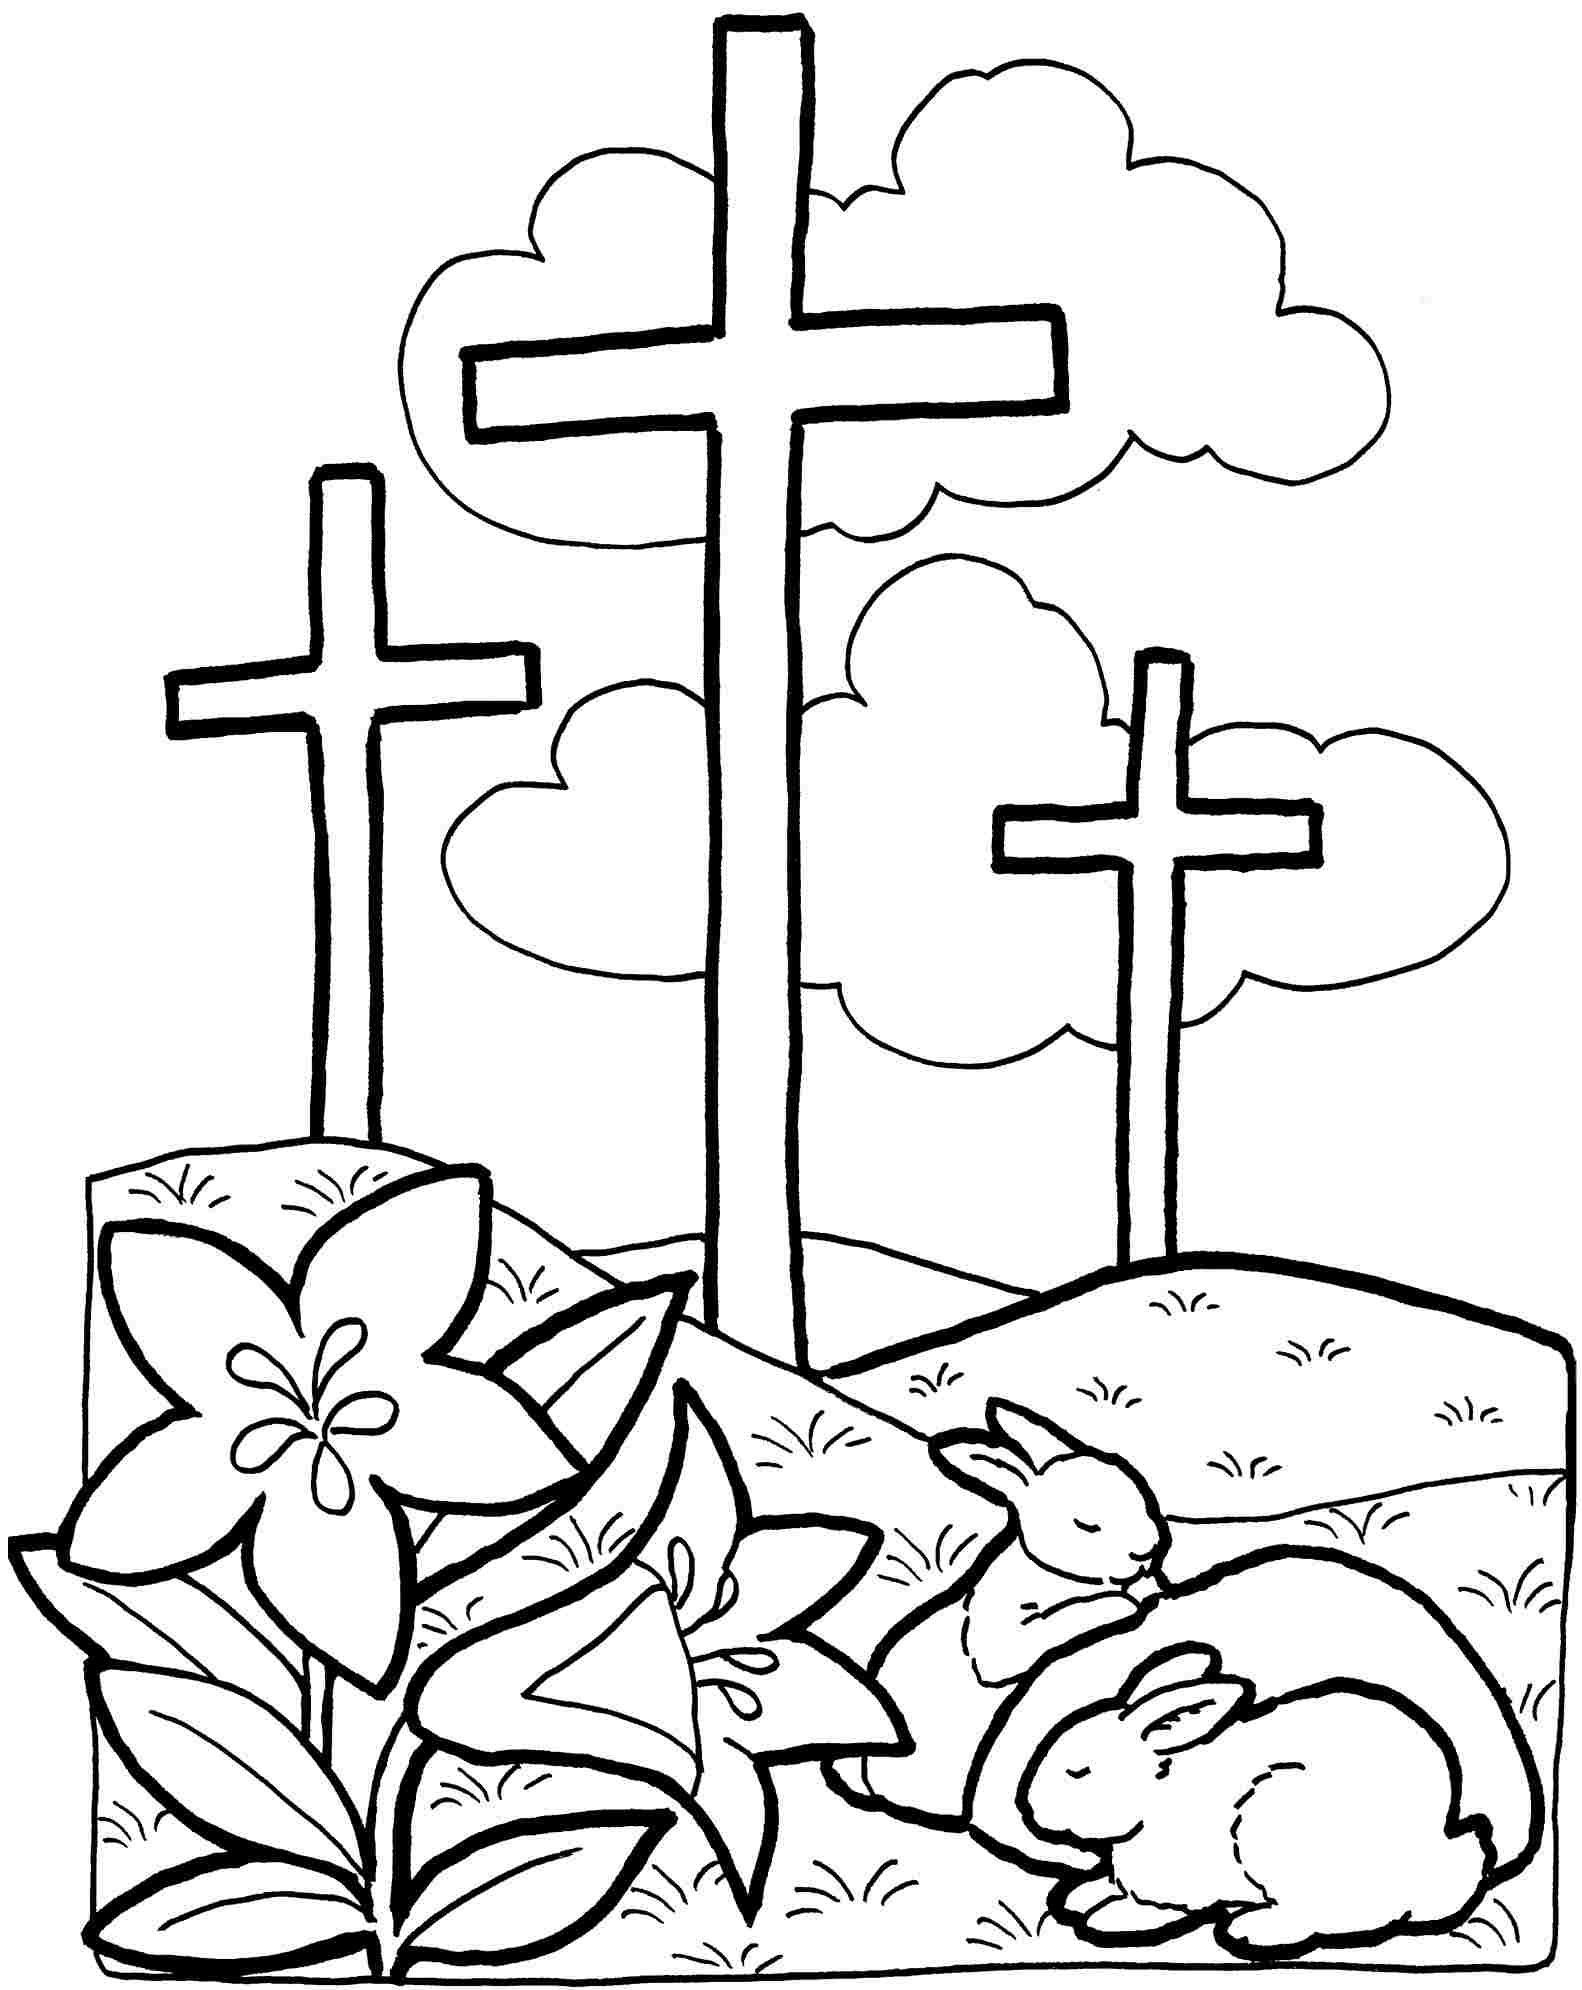 free coloring pages easter christian - photo#4